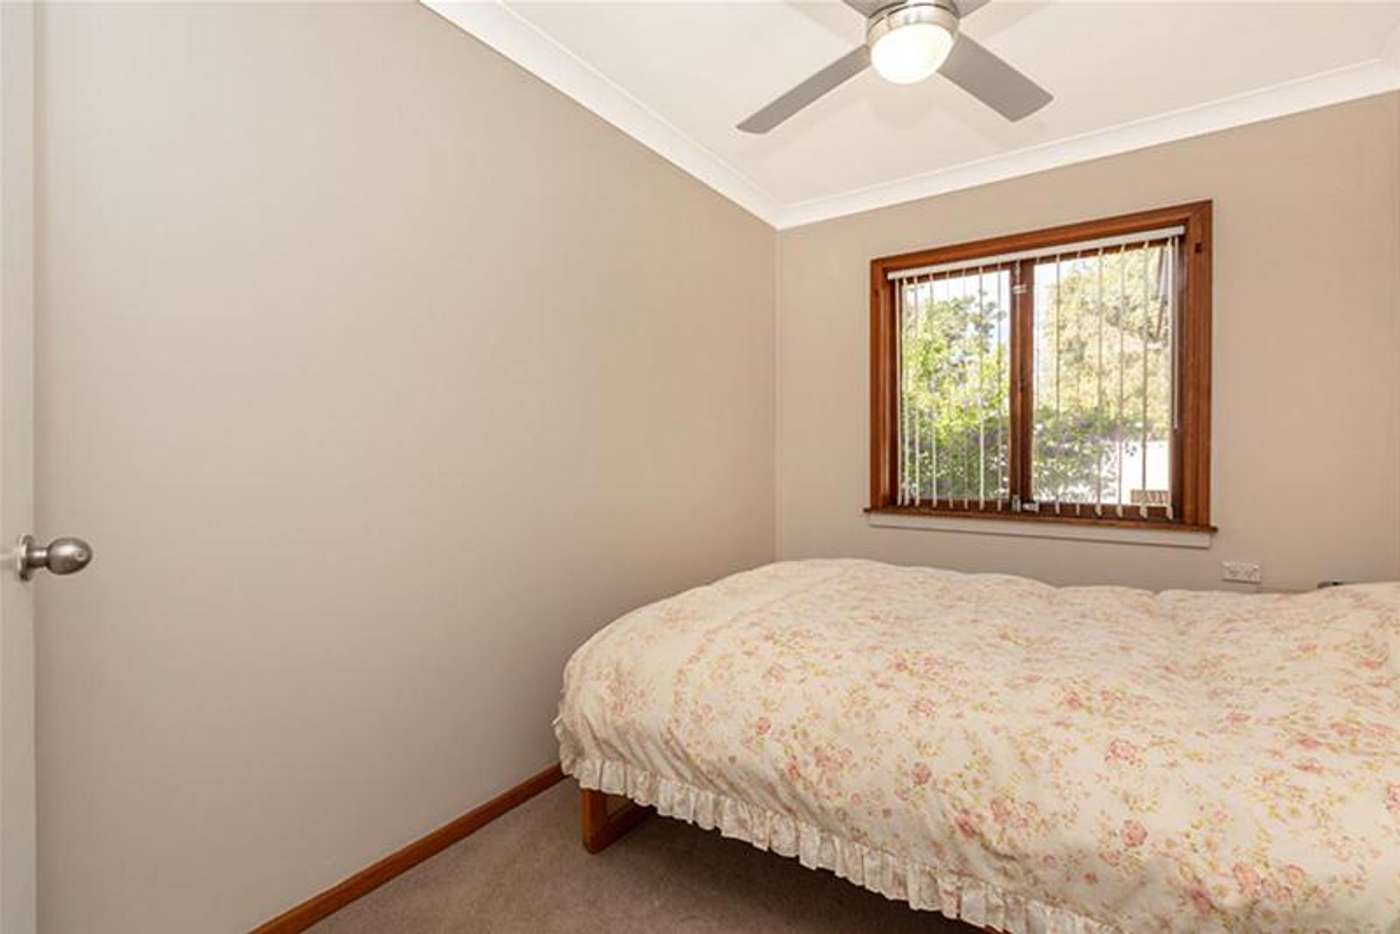 Sixth view of Homely house listing, 44 Jaeger Avenue, Gunnedah NSW 2380